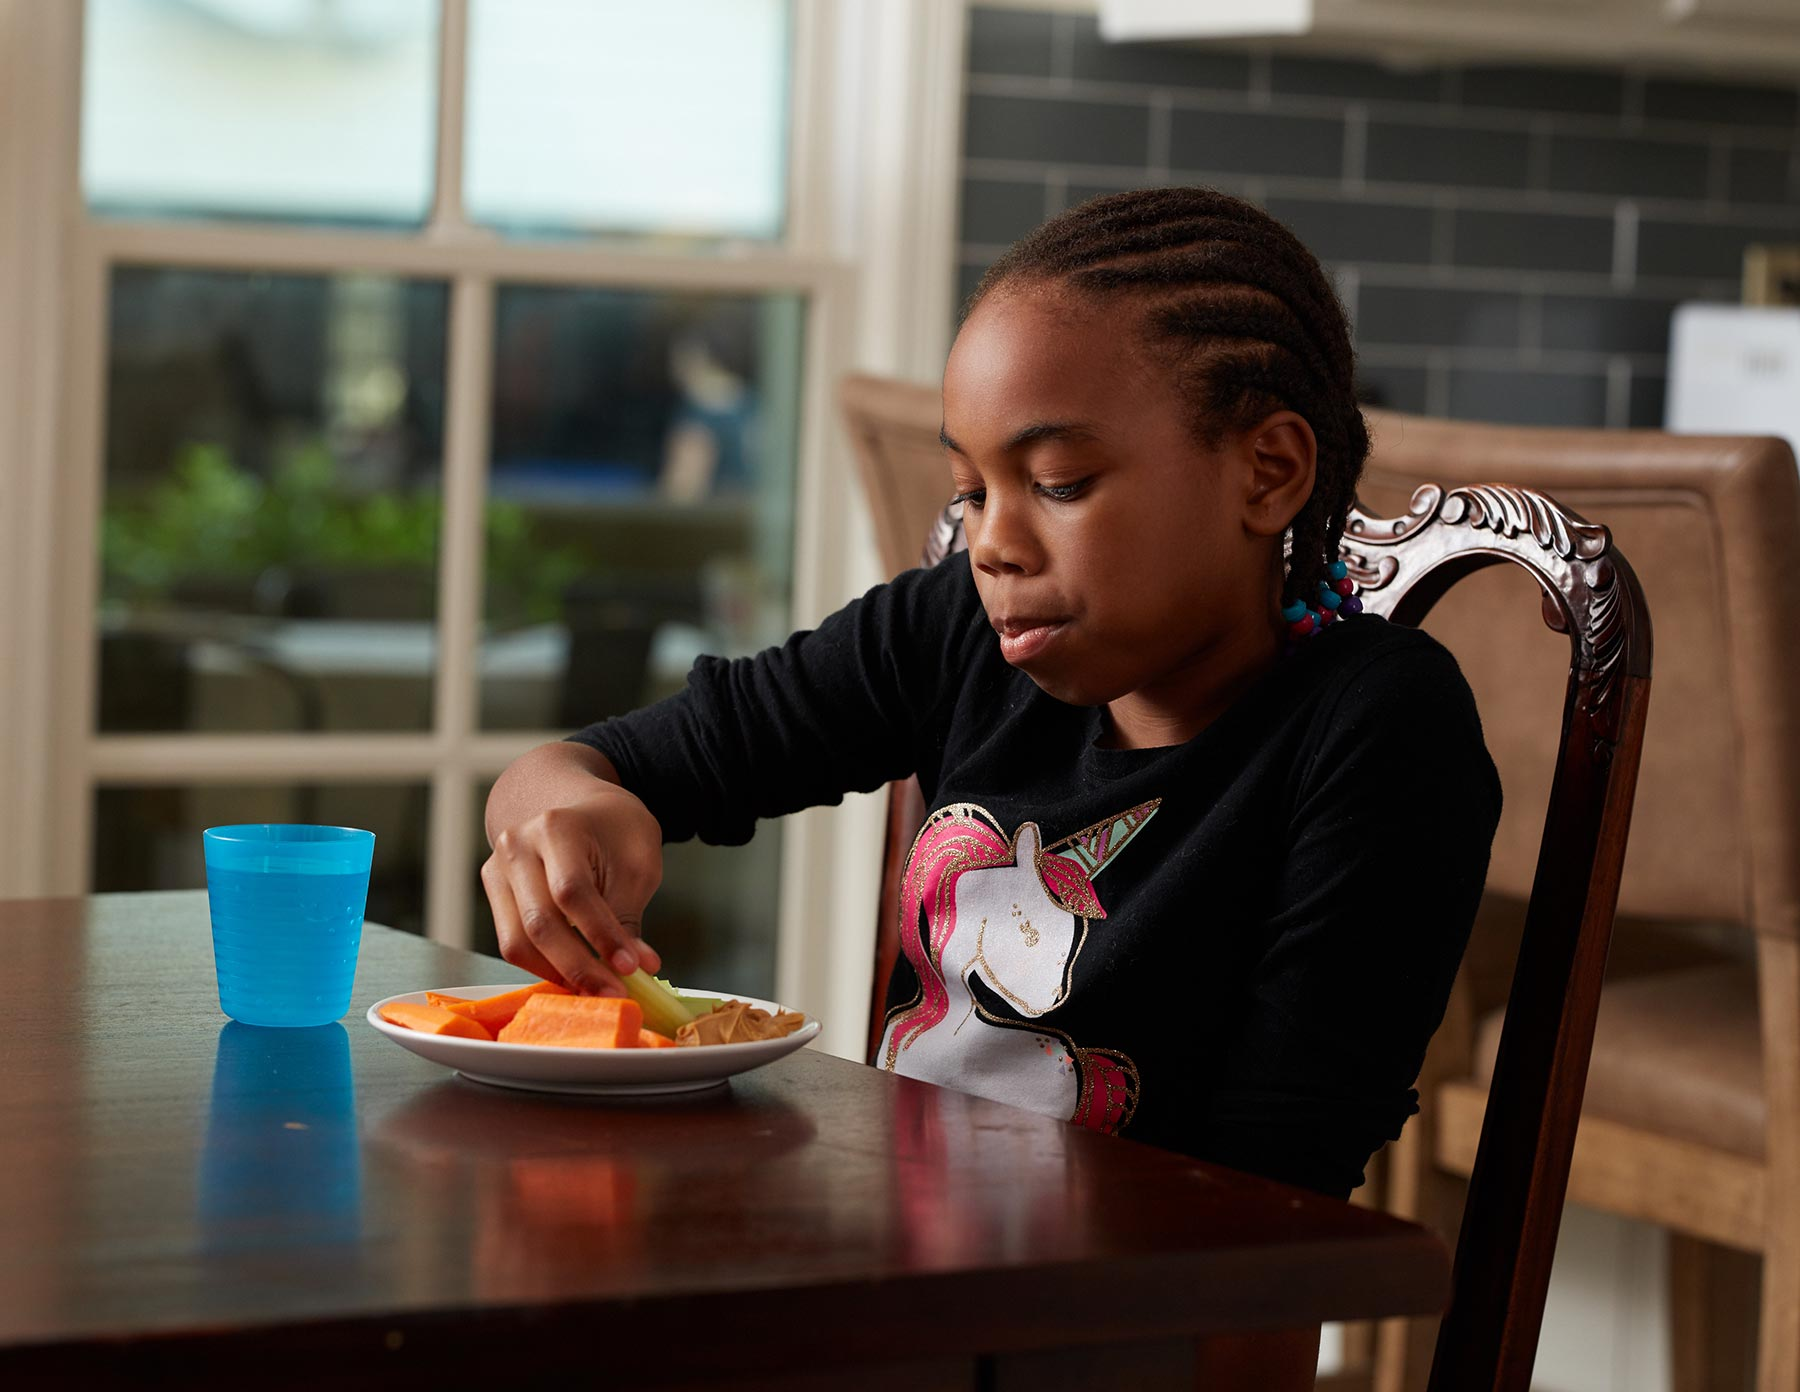 girl eating healthy snacks at table